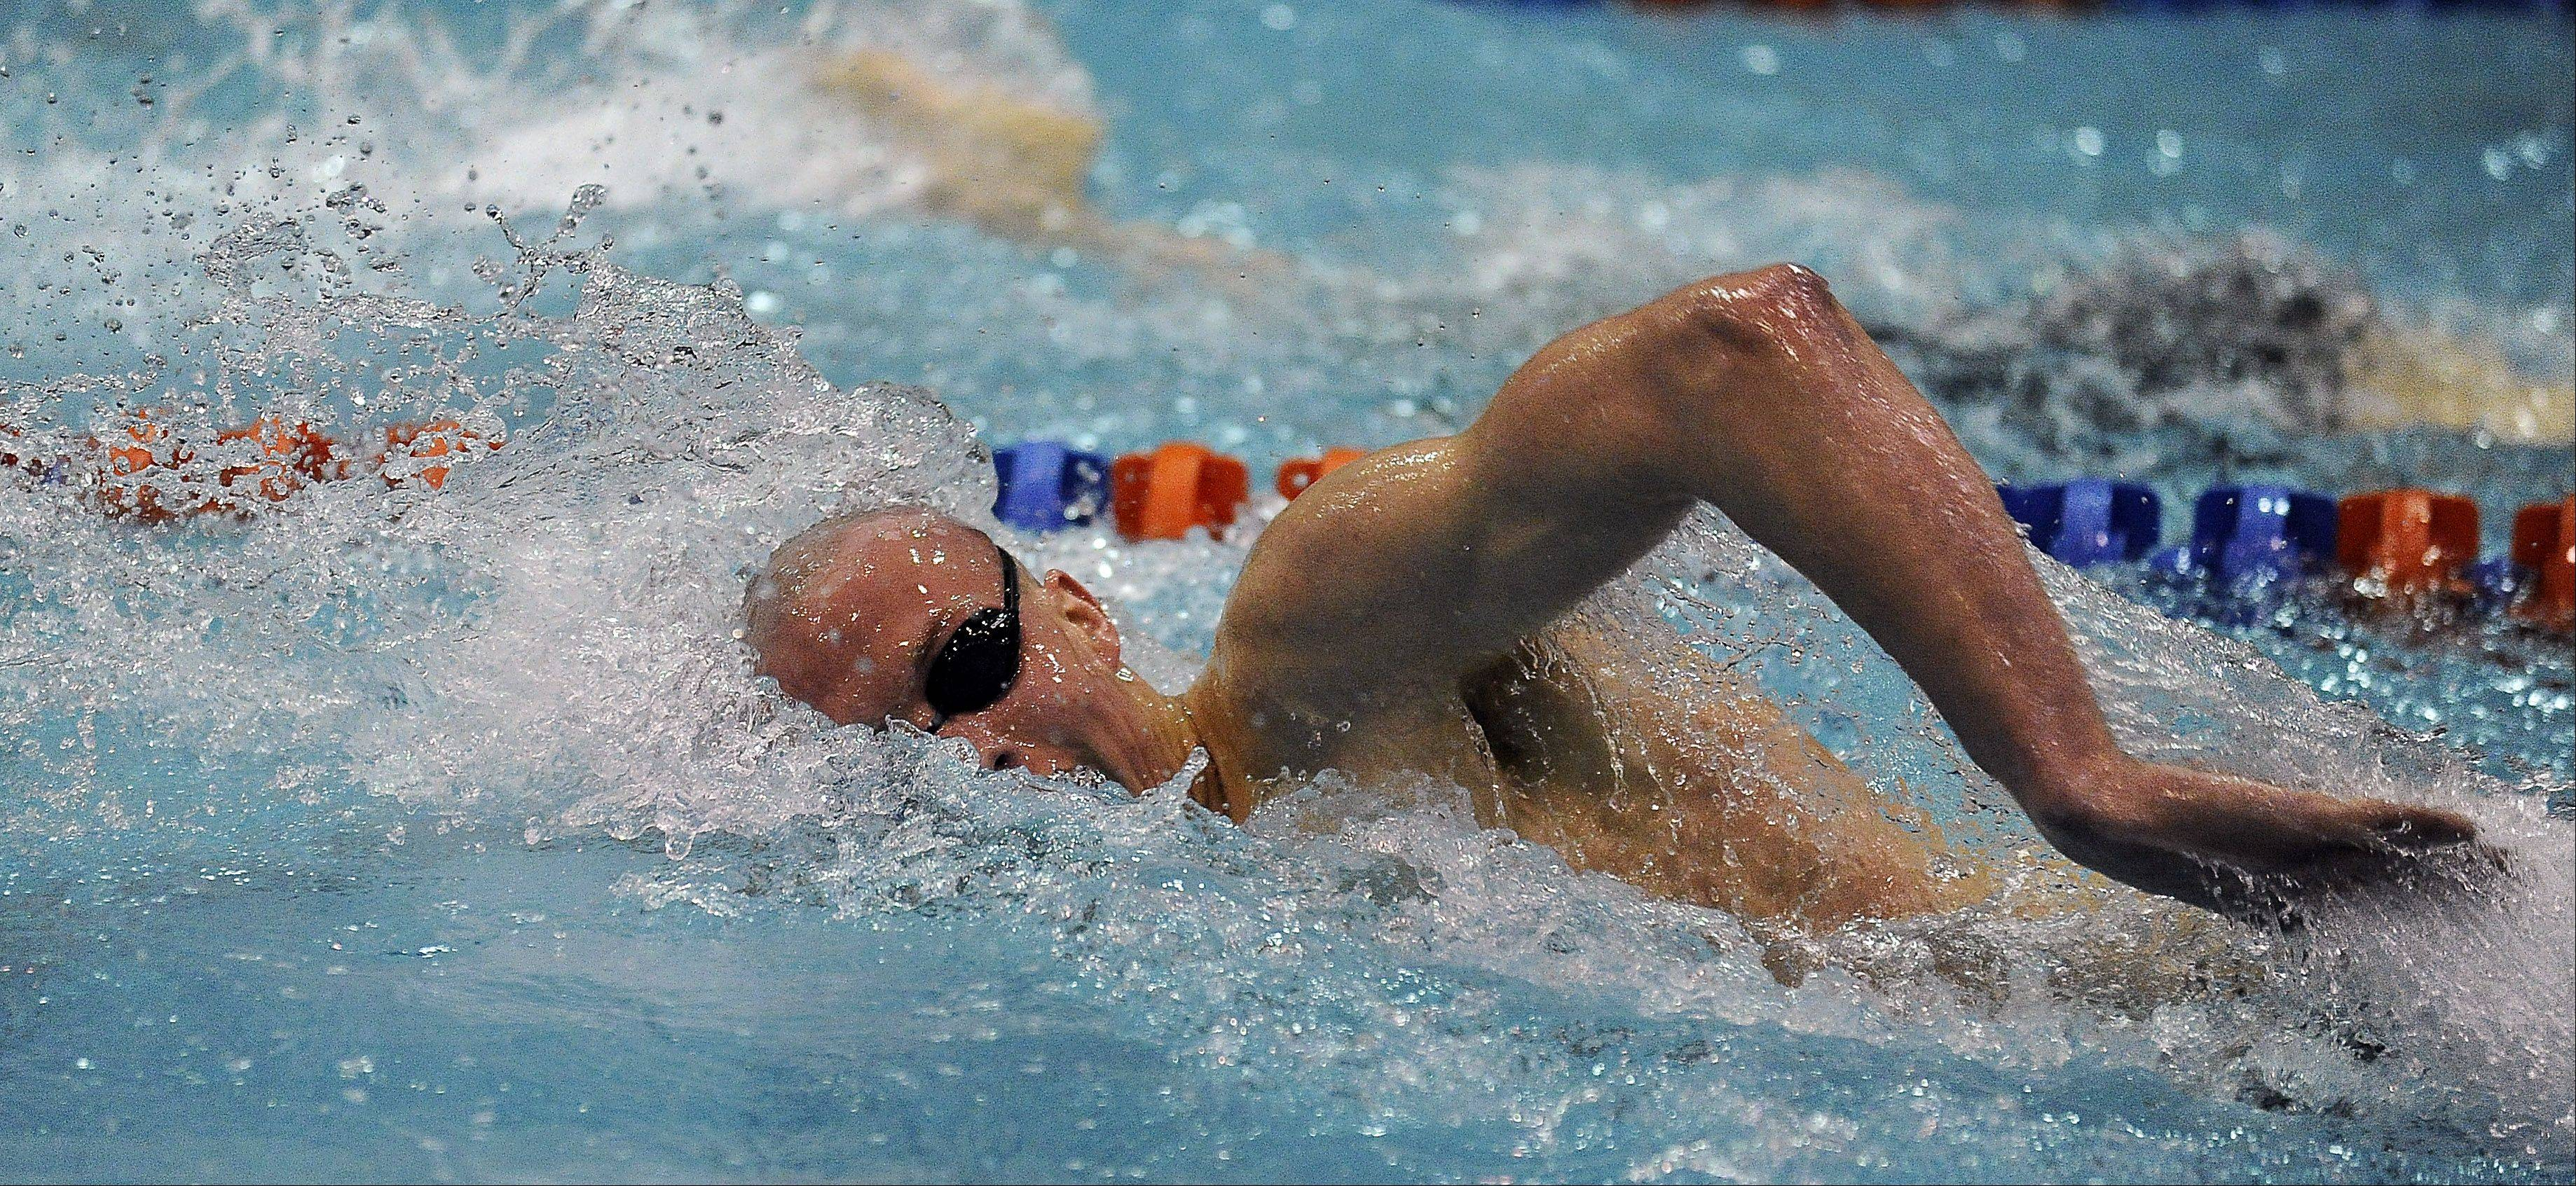 Daniel Conway of Warren powers ahead in the 500-yard freestyle in the state swimming preliminaries at Evanston High School on Friday.